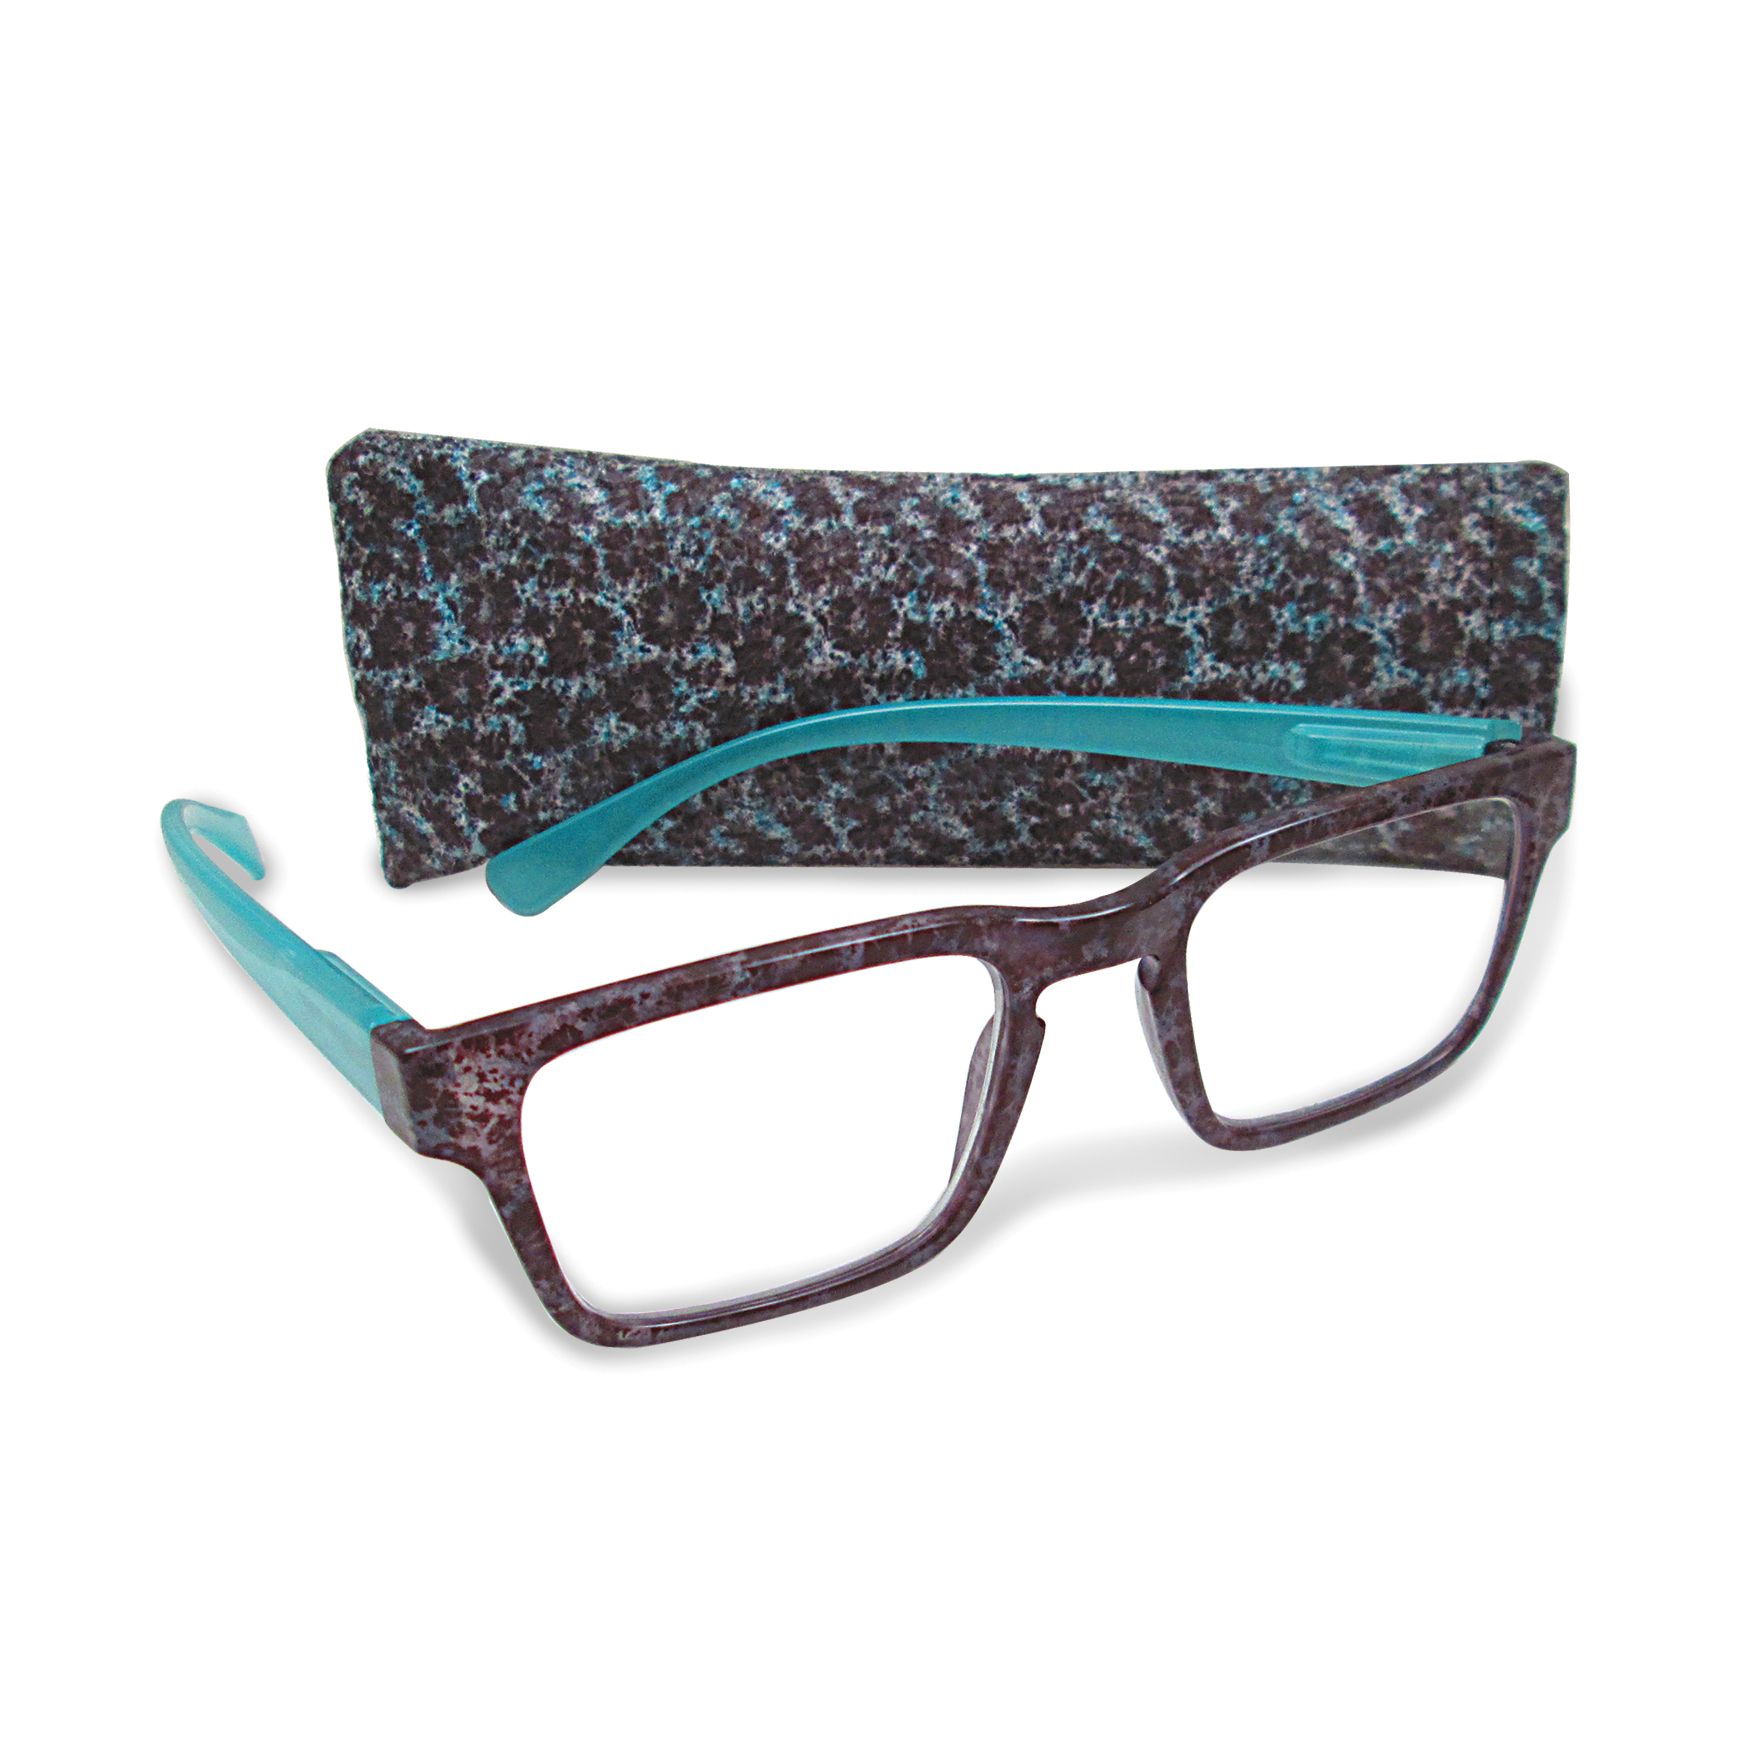 Teal +1.75 Magnification Reading Glasses